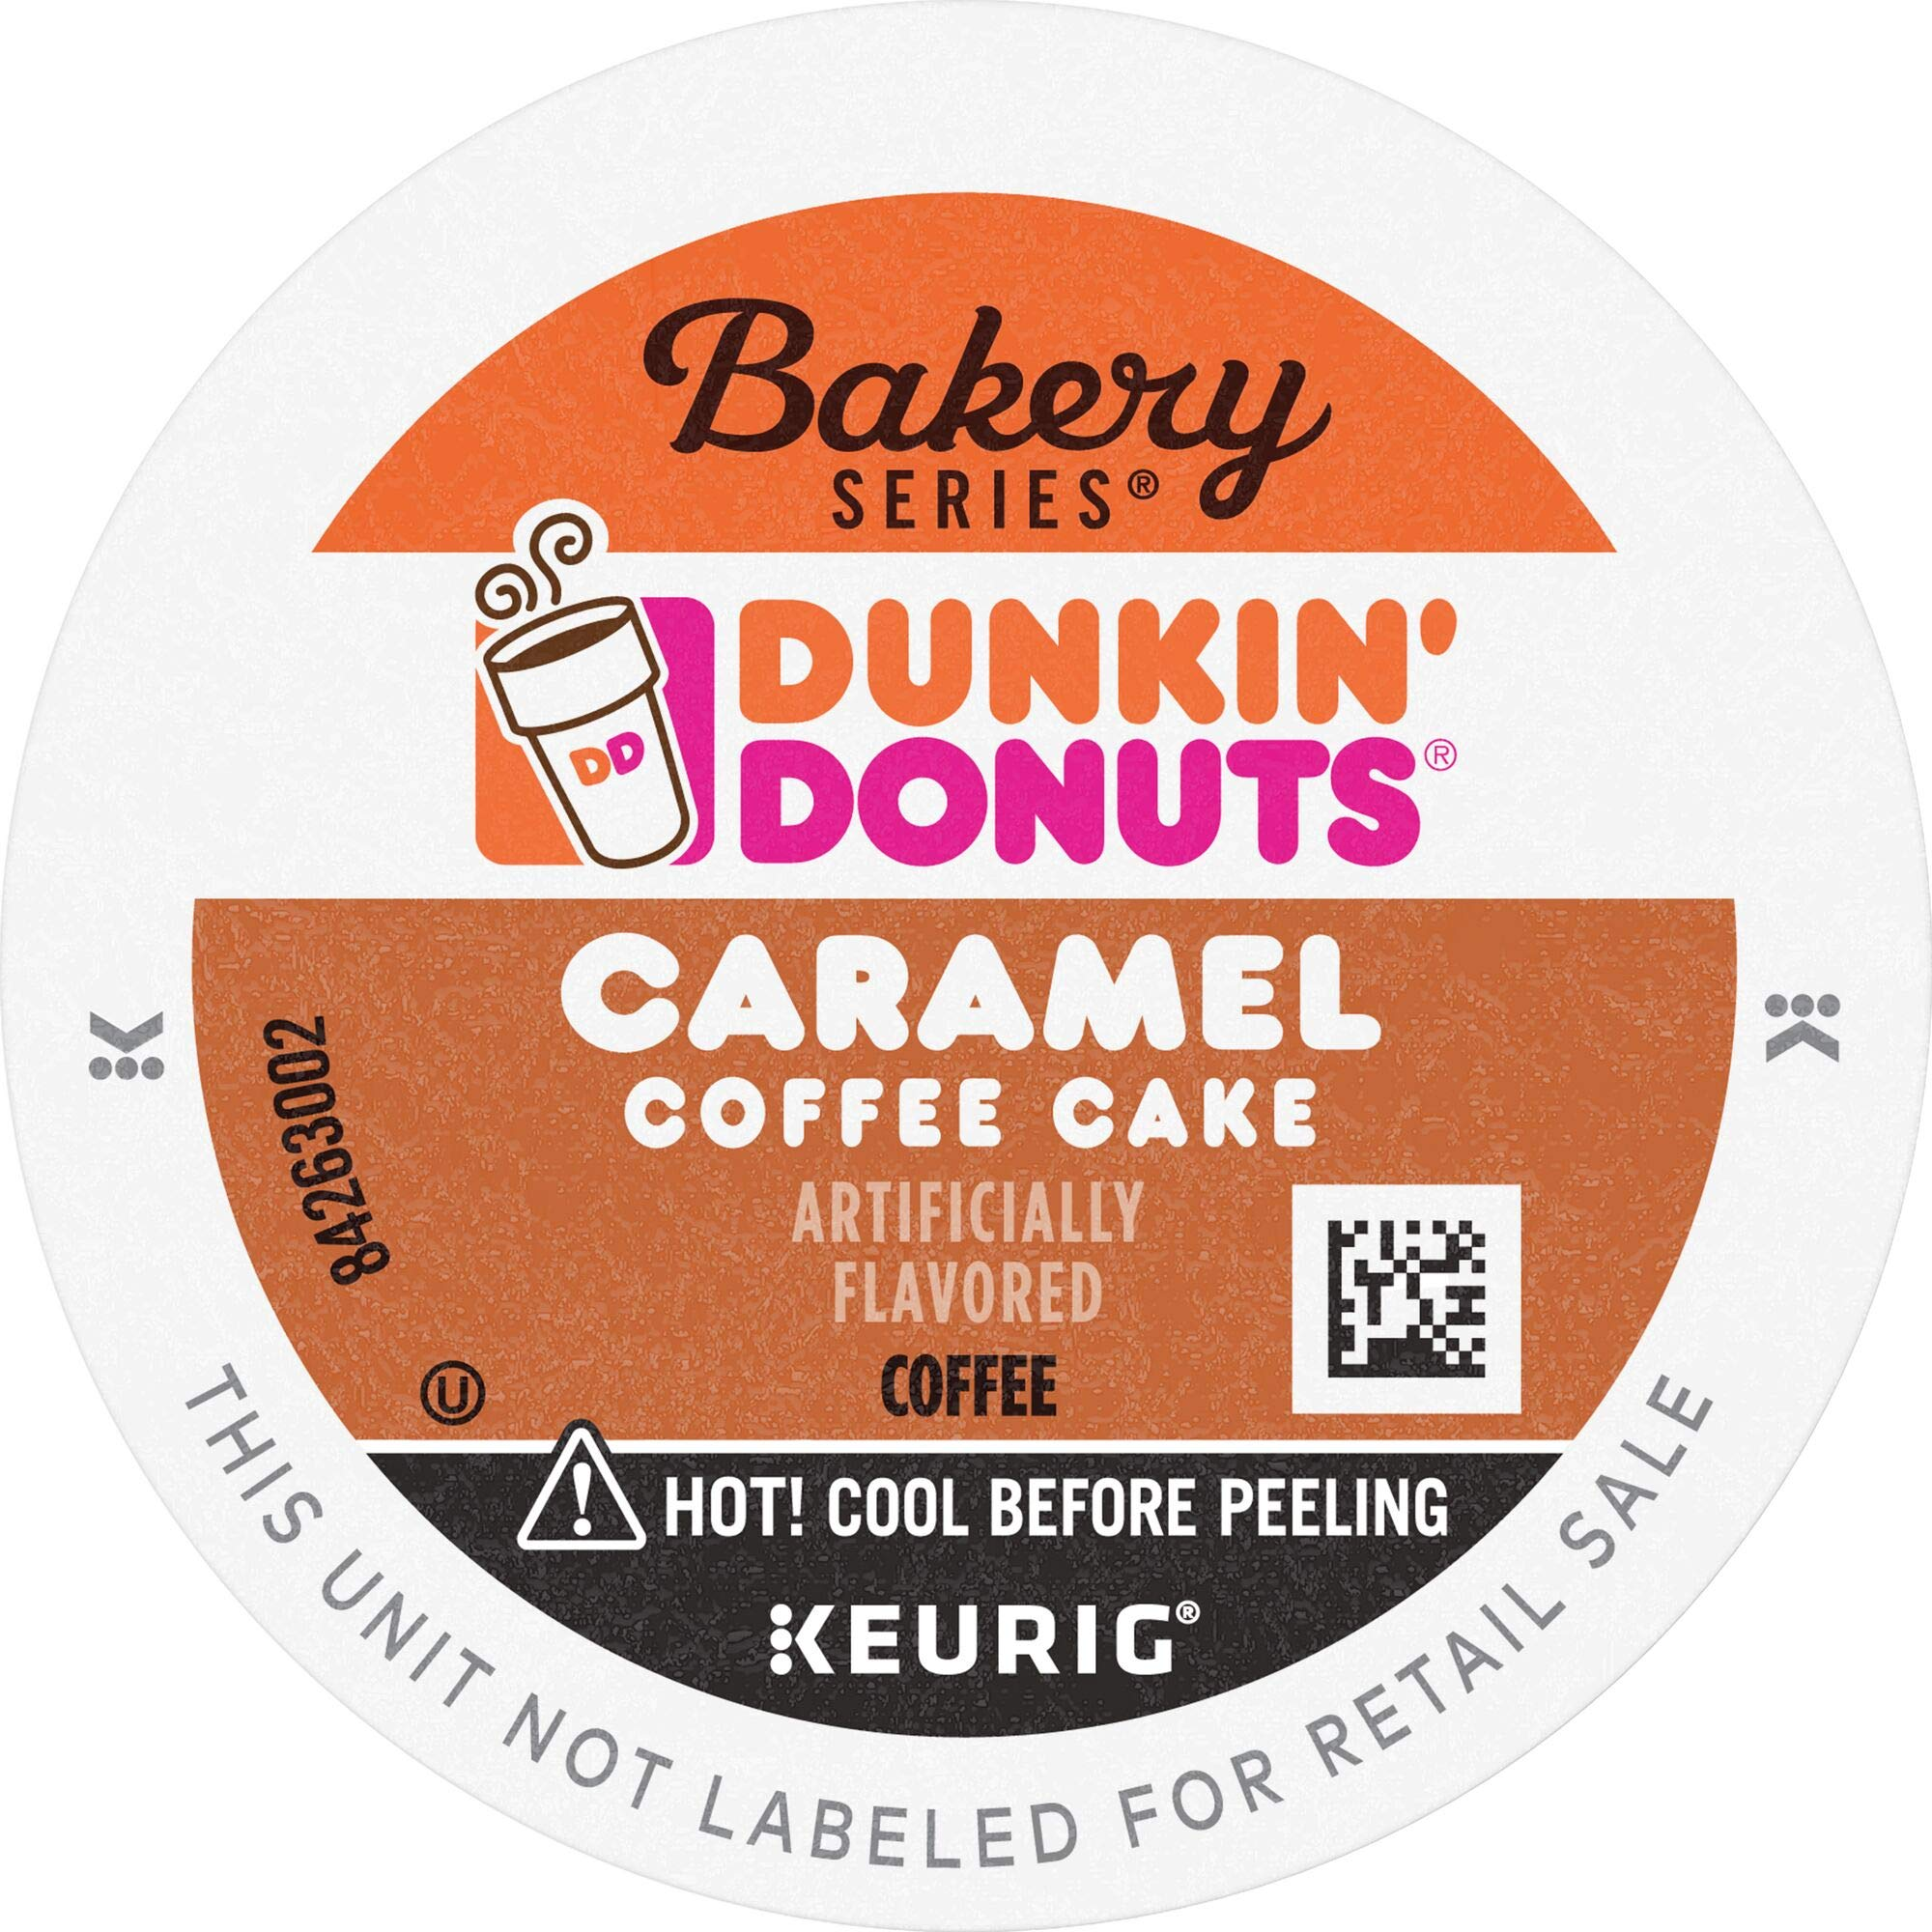 Dunkin' Donuts Bakery Series Caramel Coffee Cake Flavored Coffee, 88 K Cups for Keurig Coffee Makers, Caramel coffee Cake, 88Count